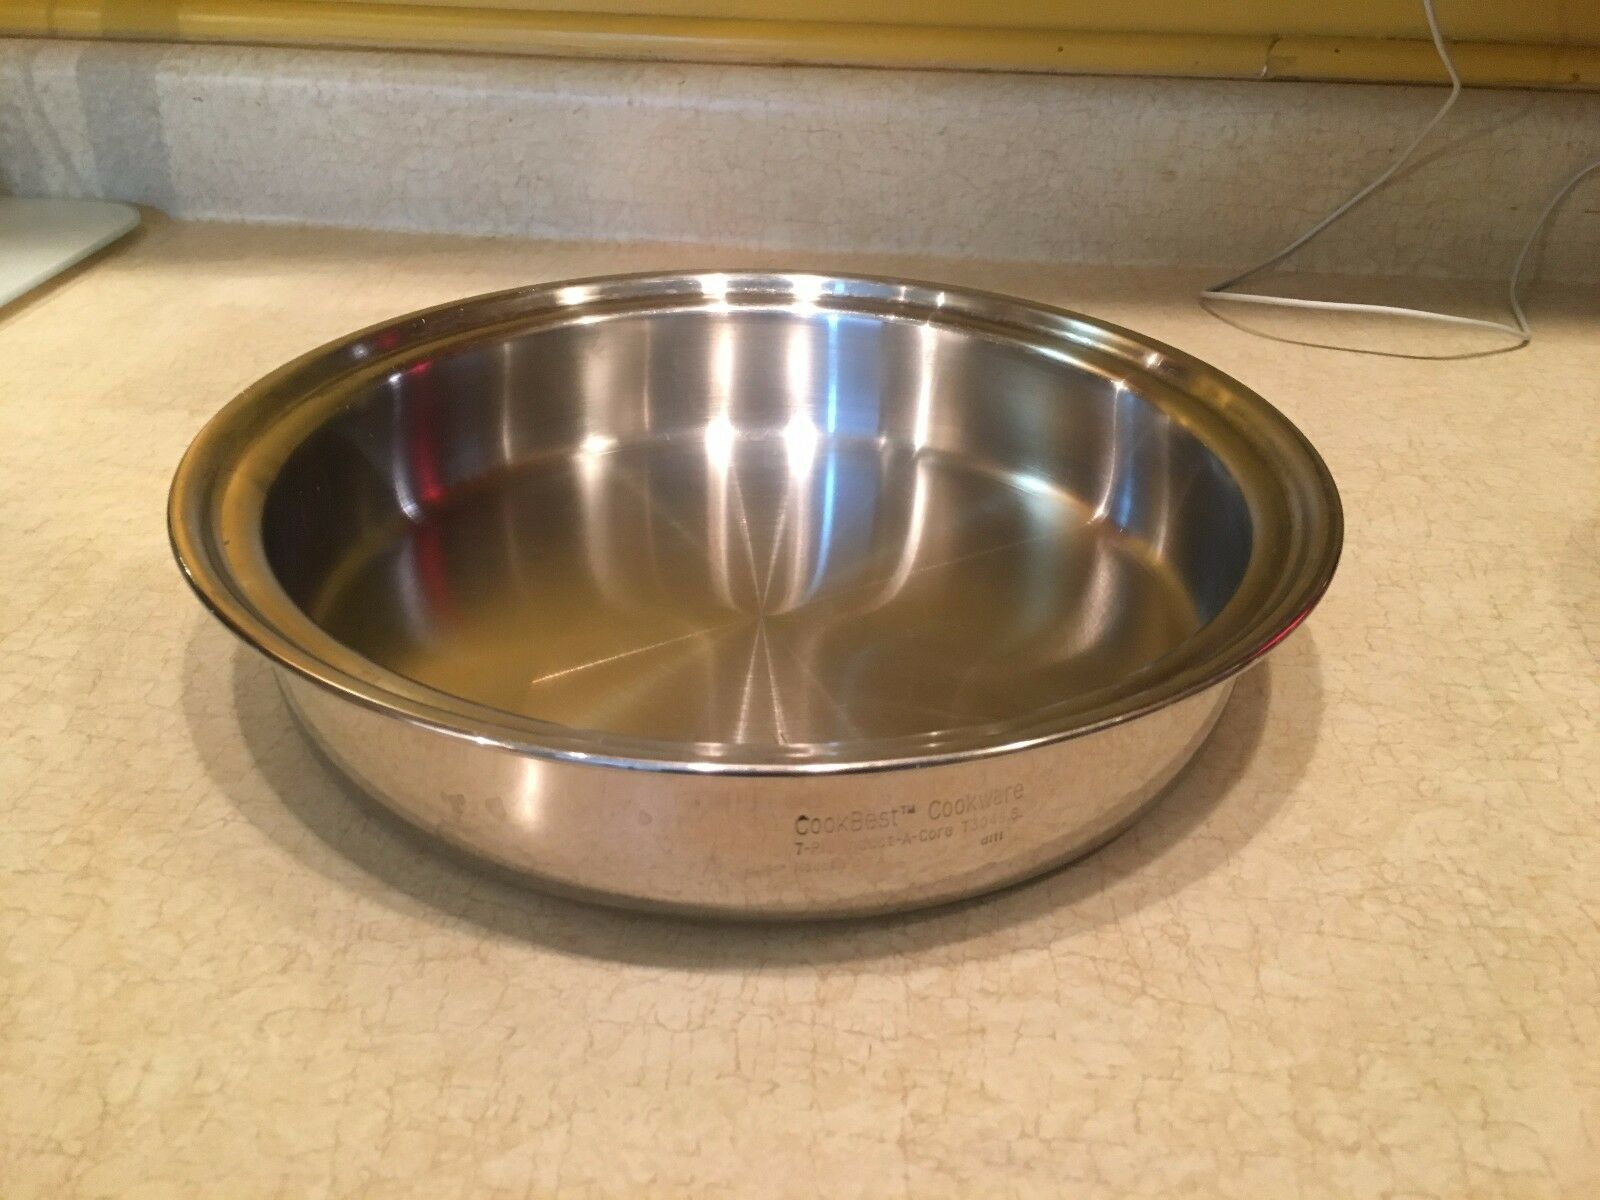 COOKBEST BRAND 7 Ply 10    INDUCT-A-CORE Pan 304 Stainless Steel. MADE IN USA 4a5705